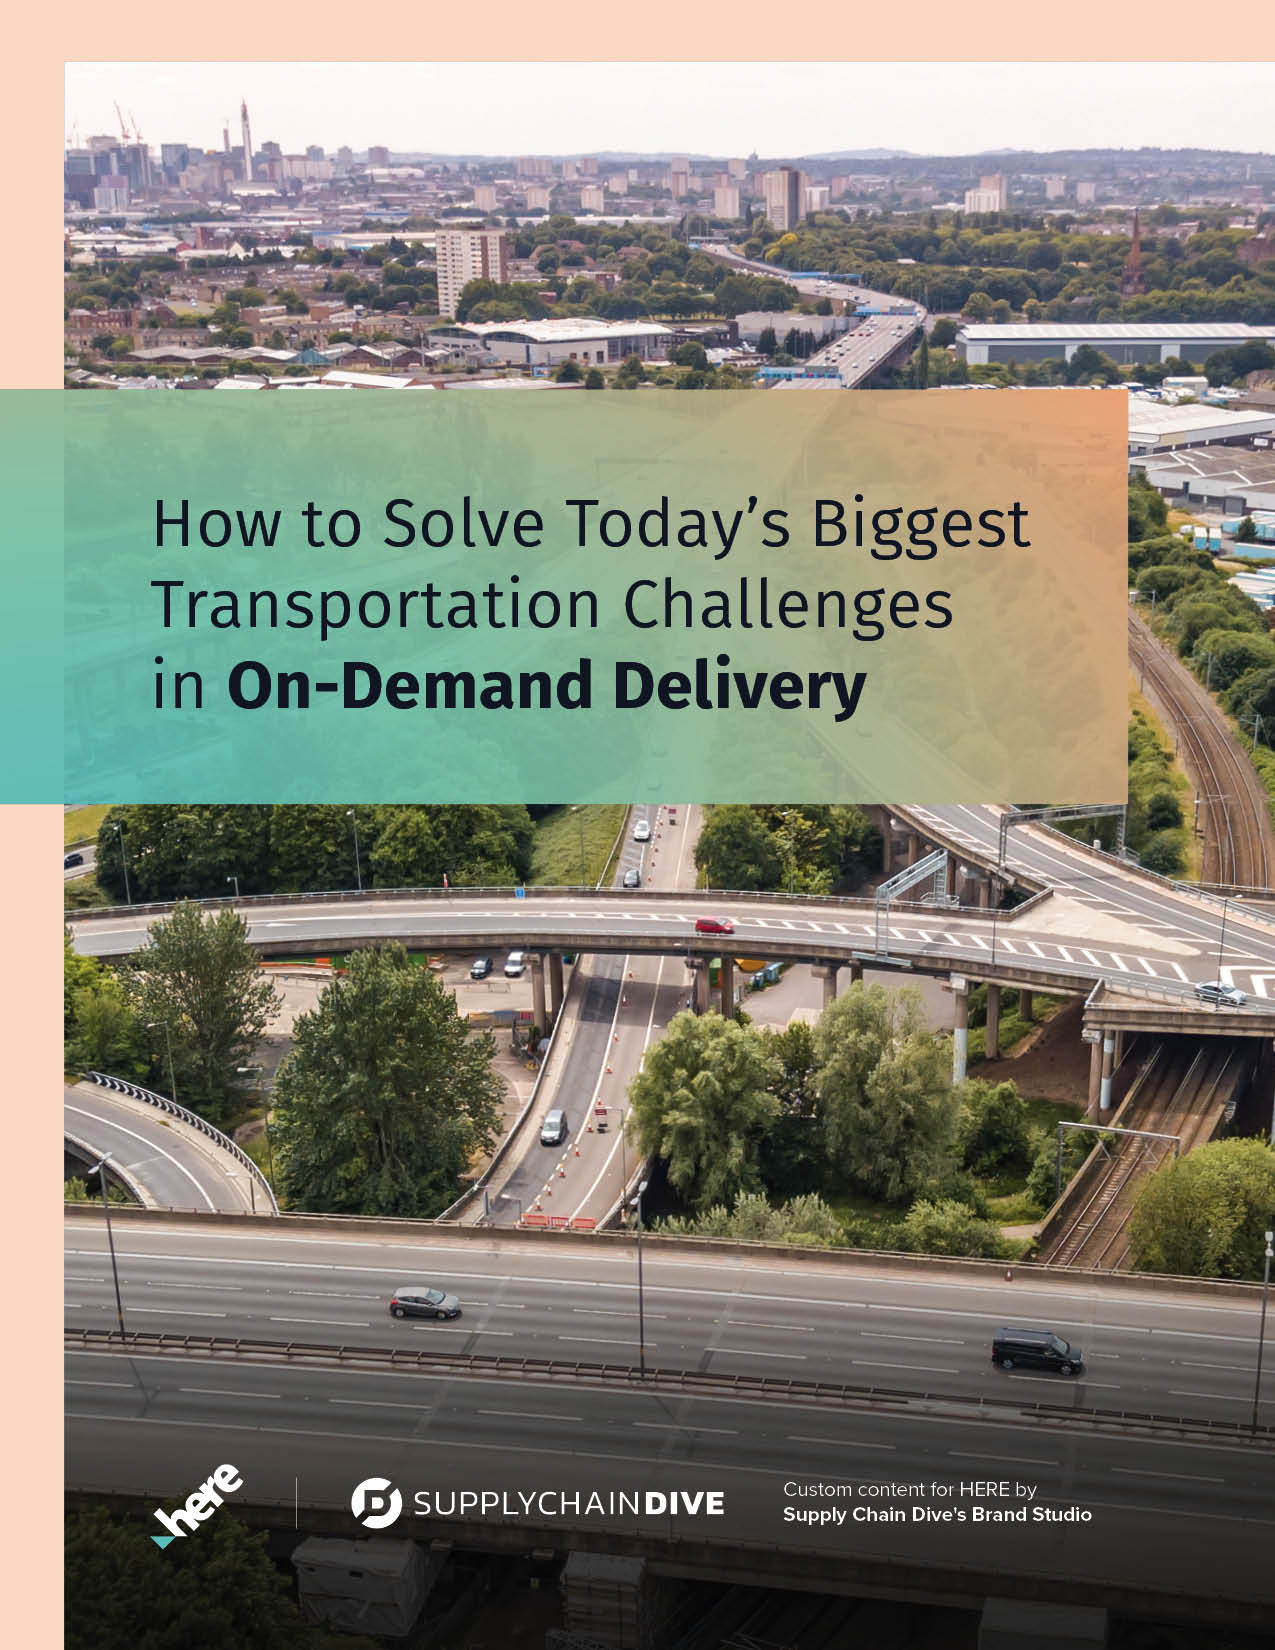 How to Solve Today's Transportation Challenges in On-Demand Delivery | Supply Chain Dive